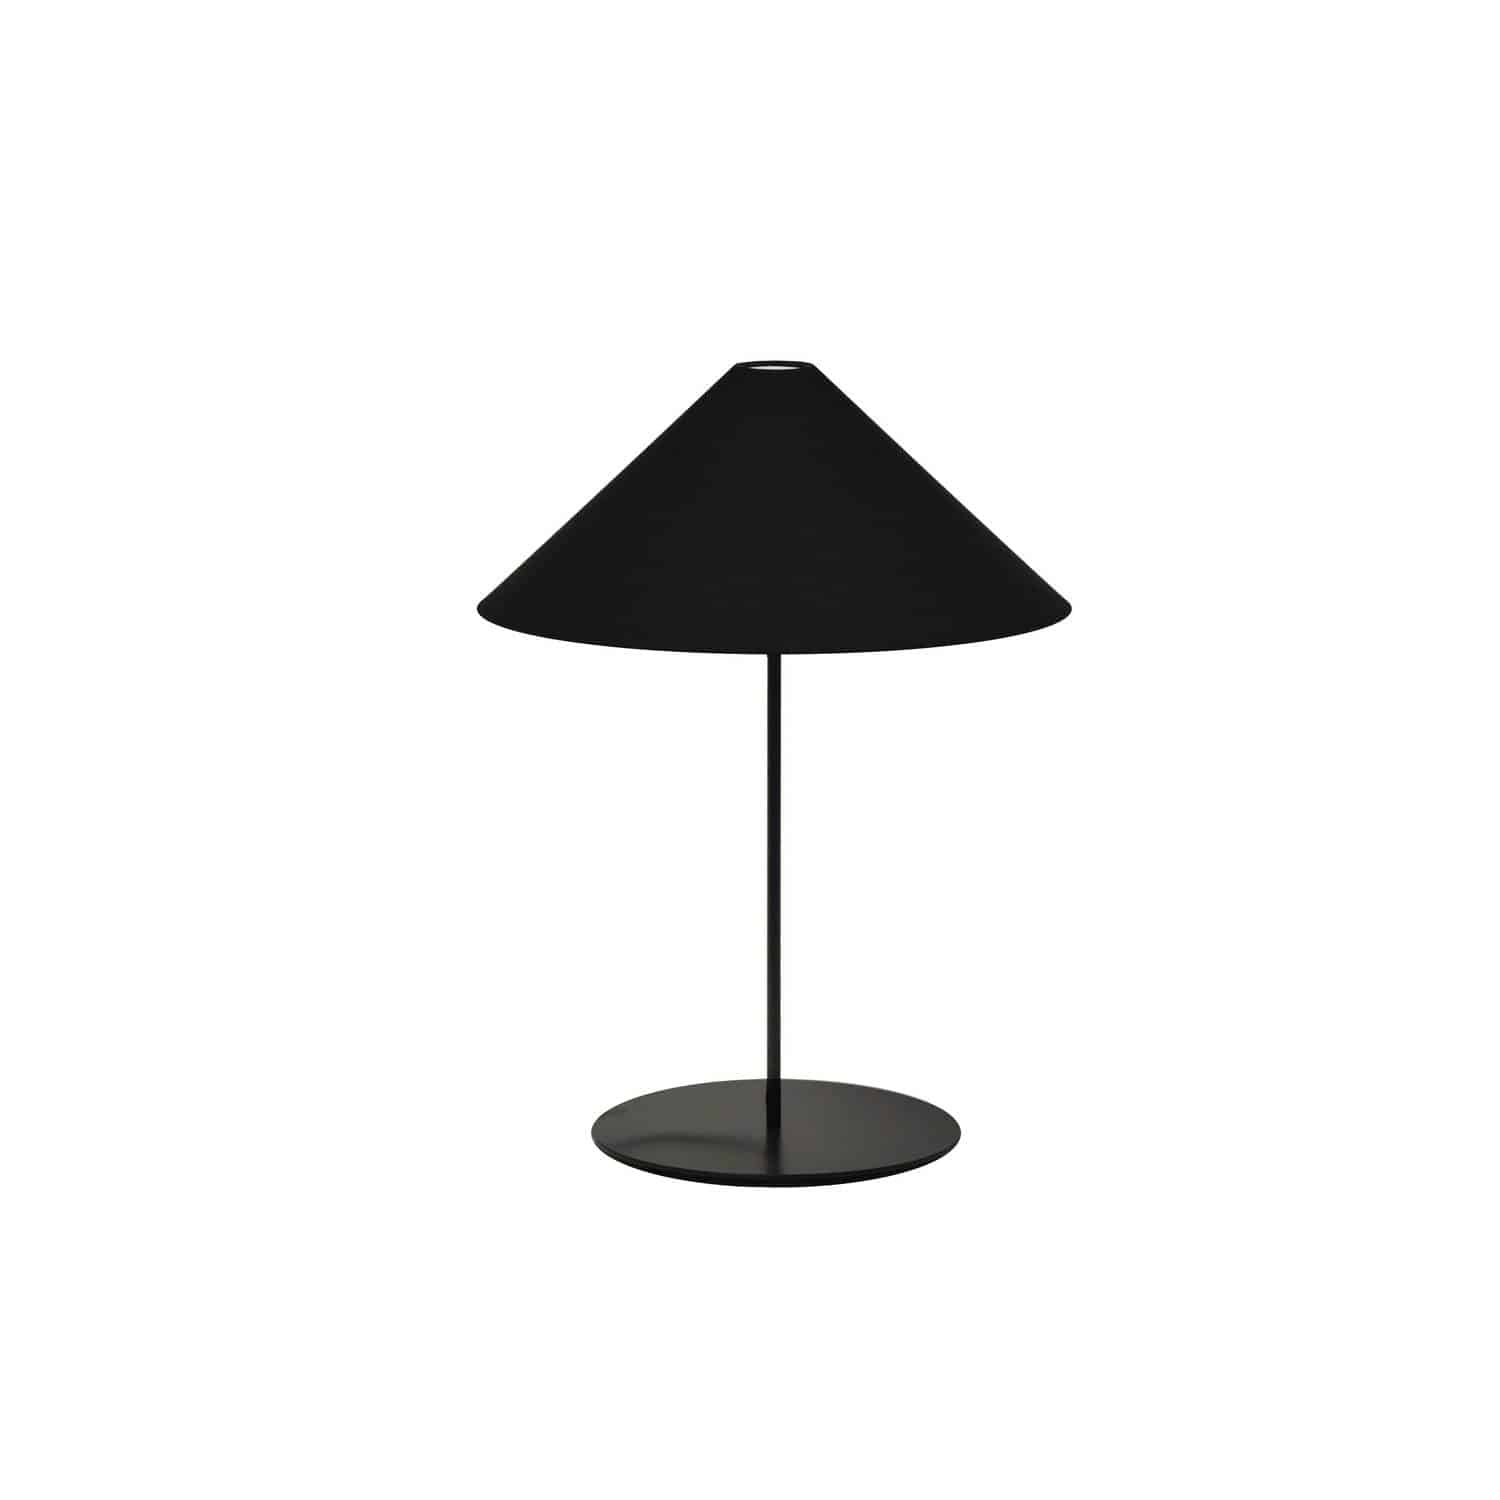 1LT Tapered Table Lamp, Black Shade, Black